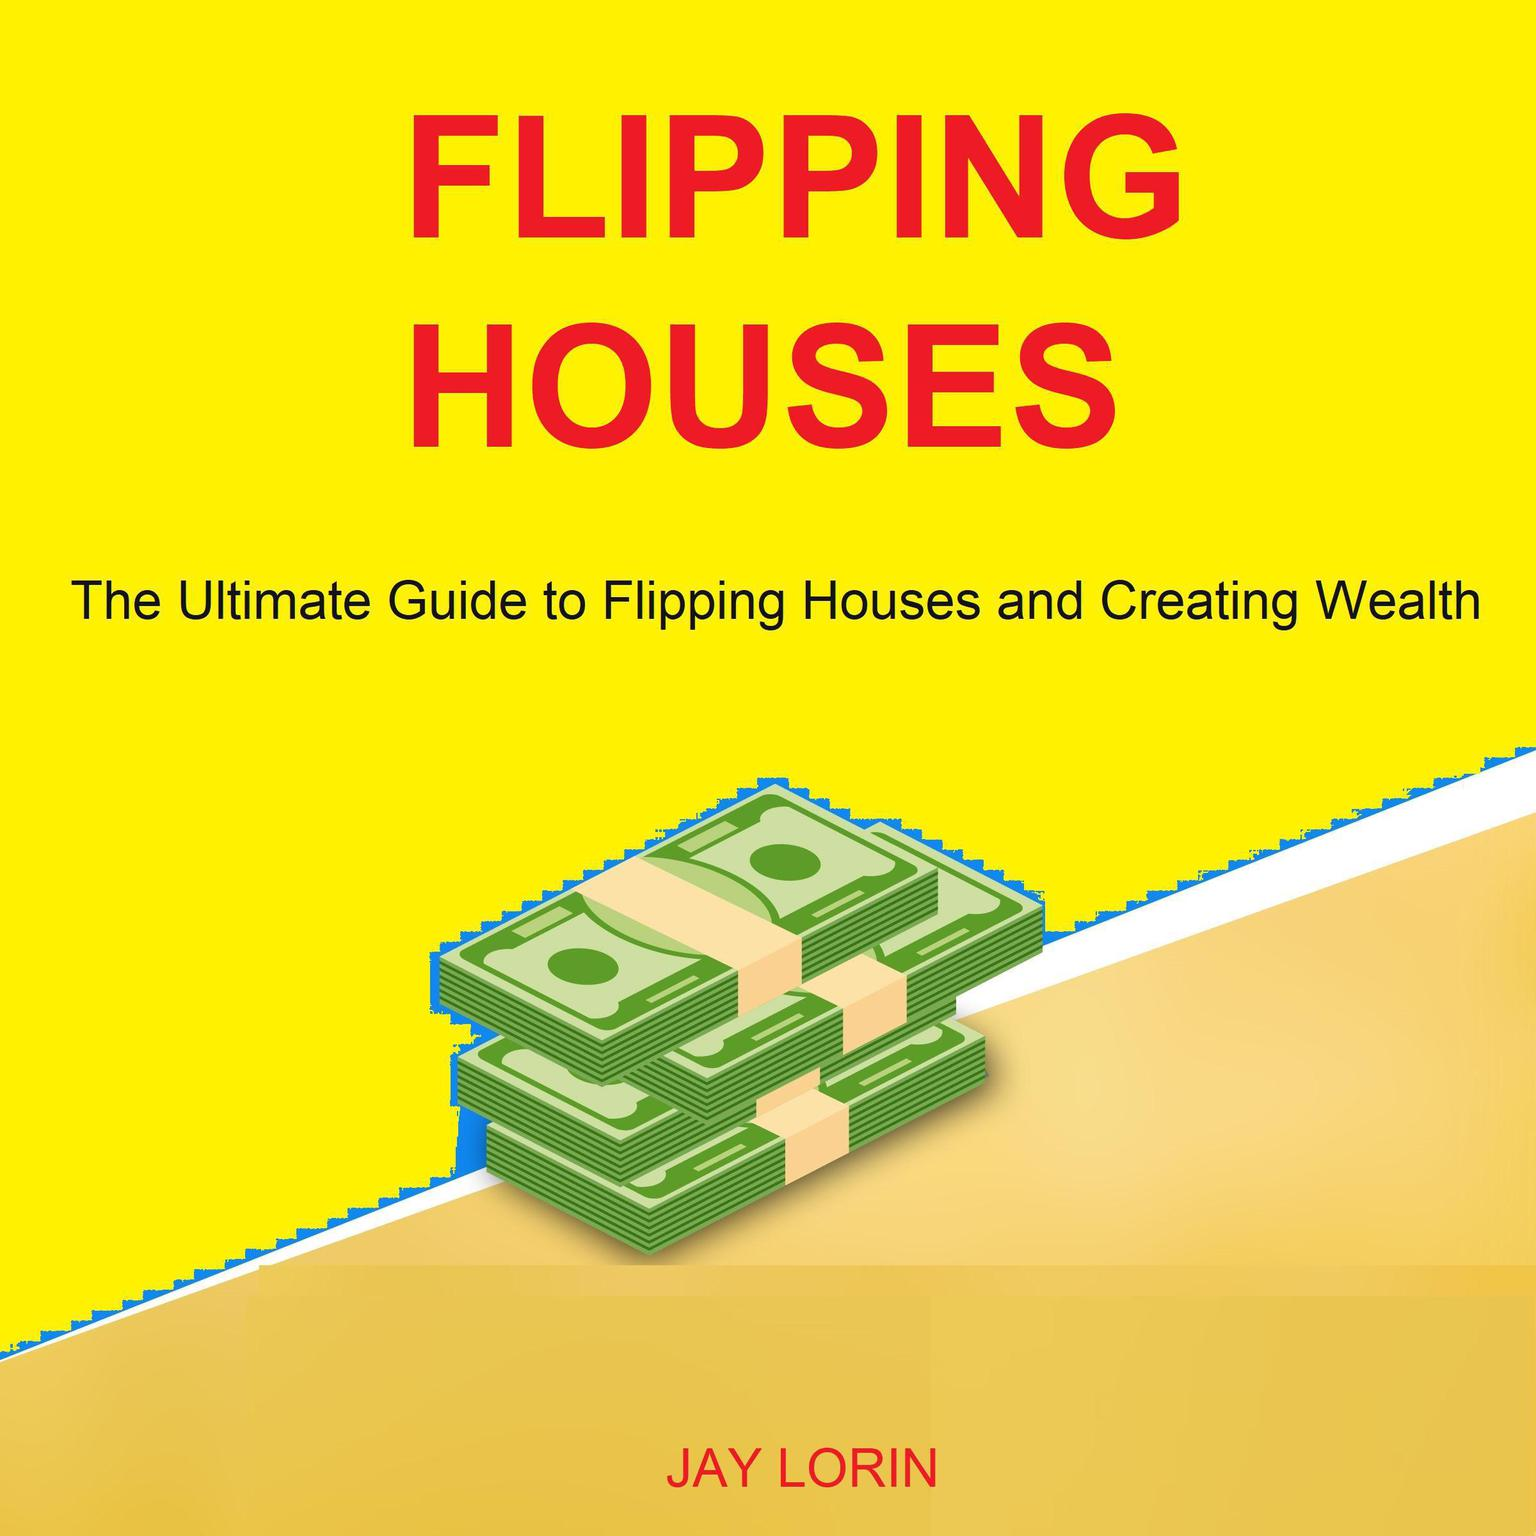 Flipping Houses: The Ultimate Guide to Flipping Houses and Creating Wealth Audiobook, by Jay Lorin